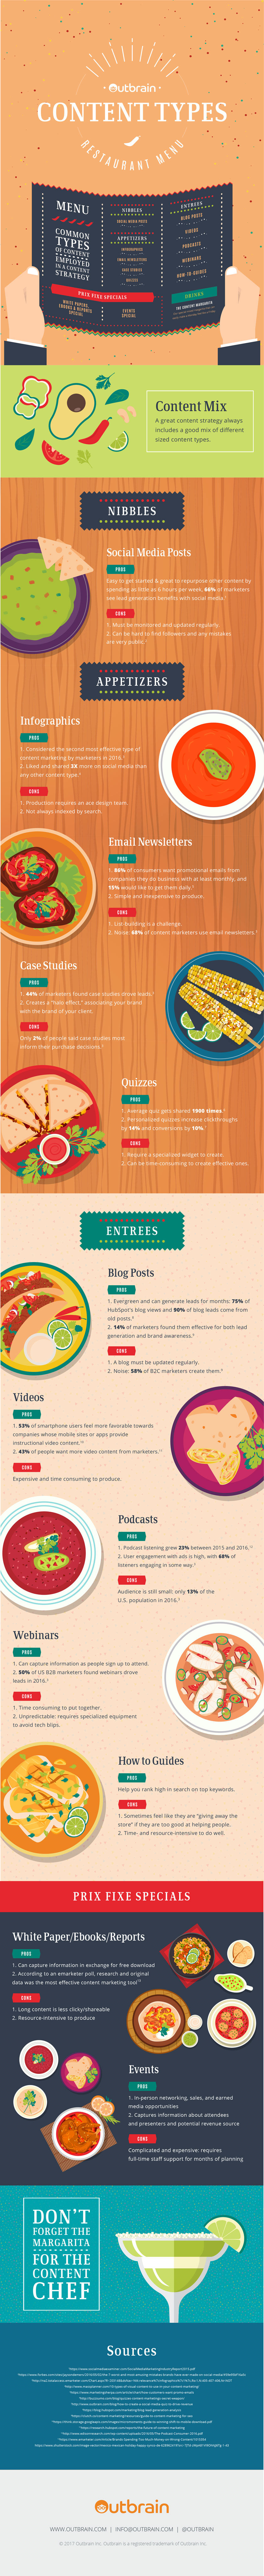 Content types- Infographic